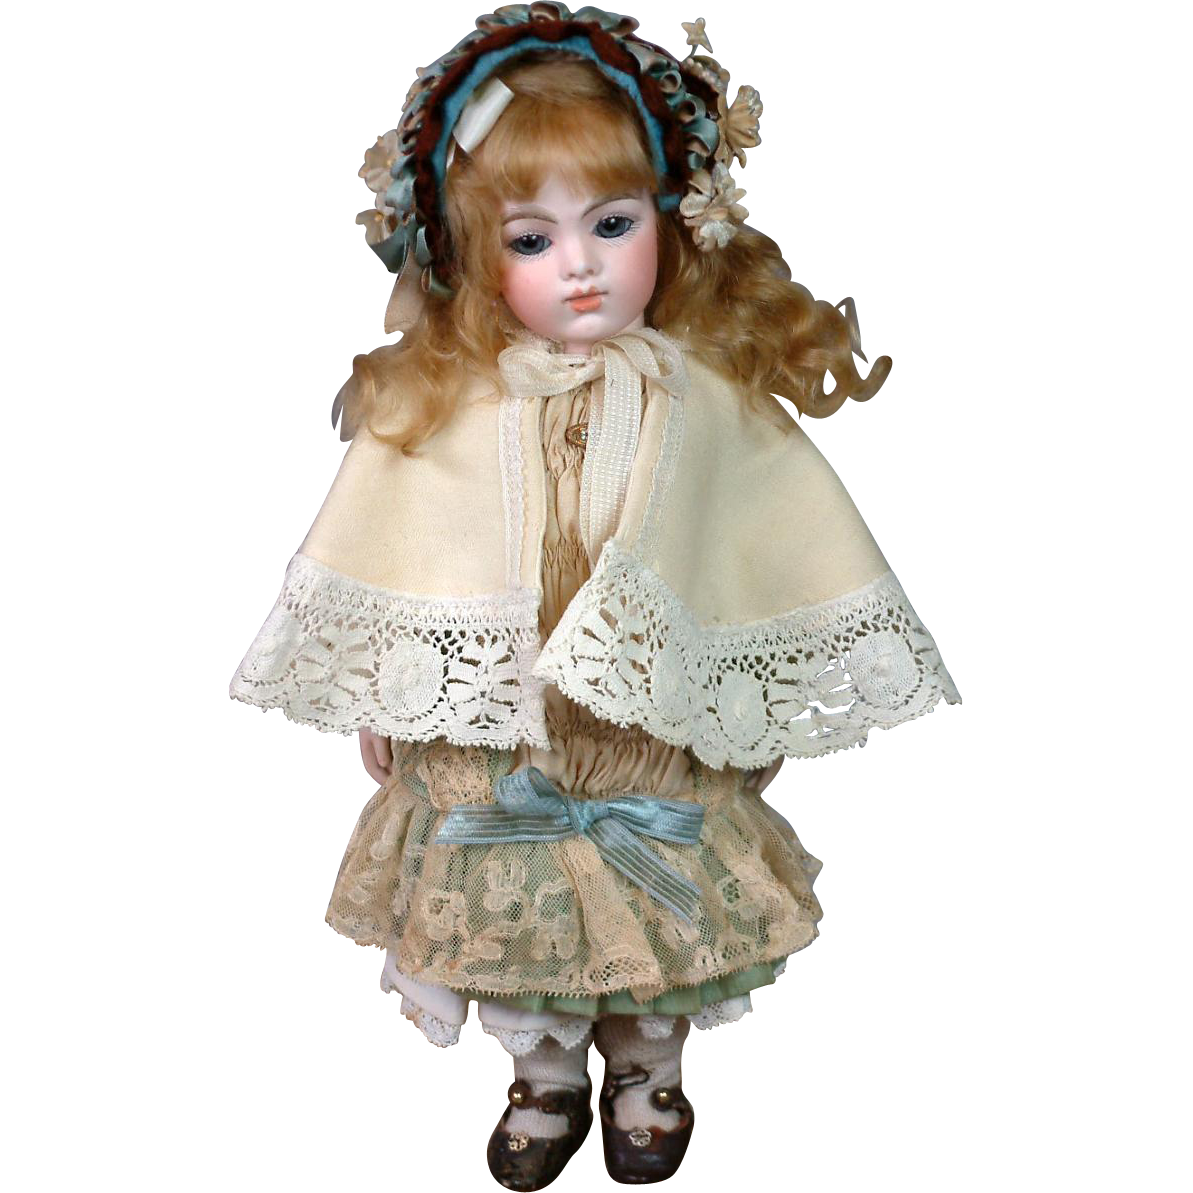 Darling Antique Ecru Wool Capelet w/Handmade Lace Trim c.1885 for Little Bebe or Fashion Doll!